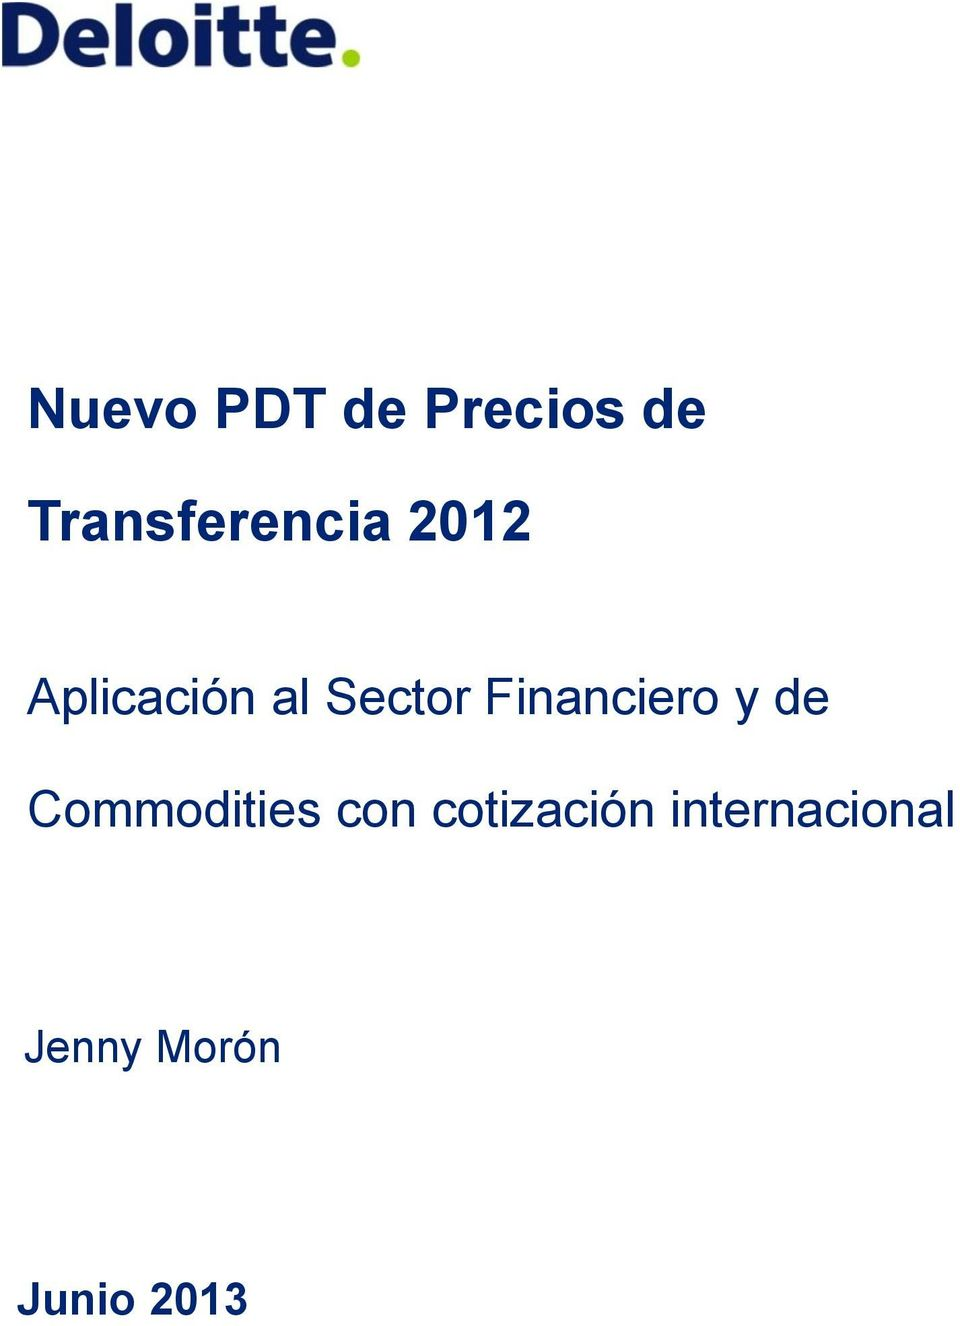 Sector Financiero y de Commodities